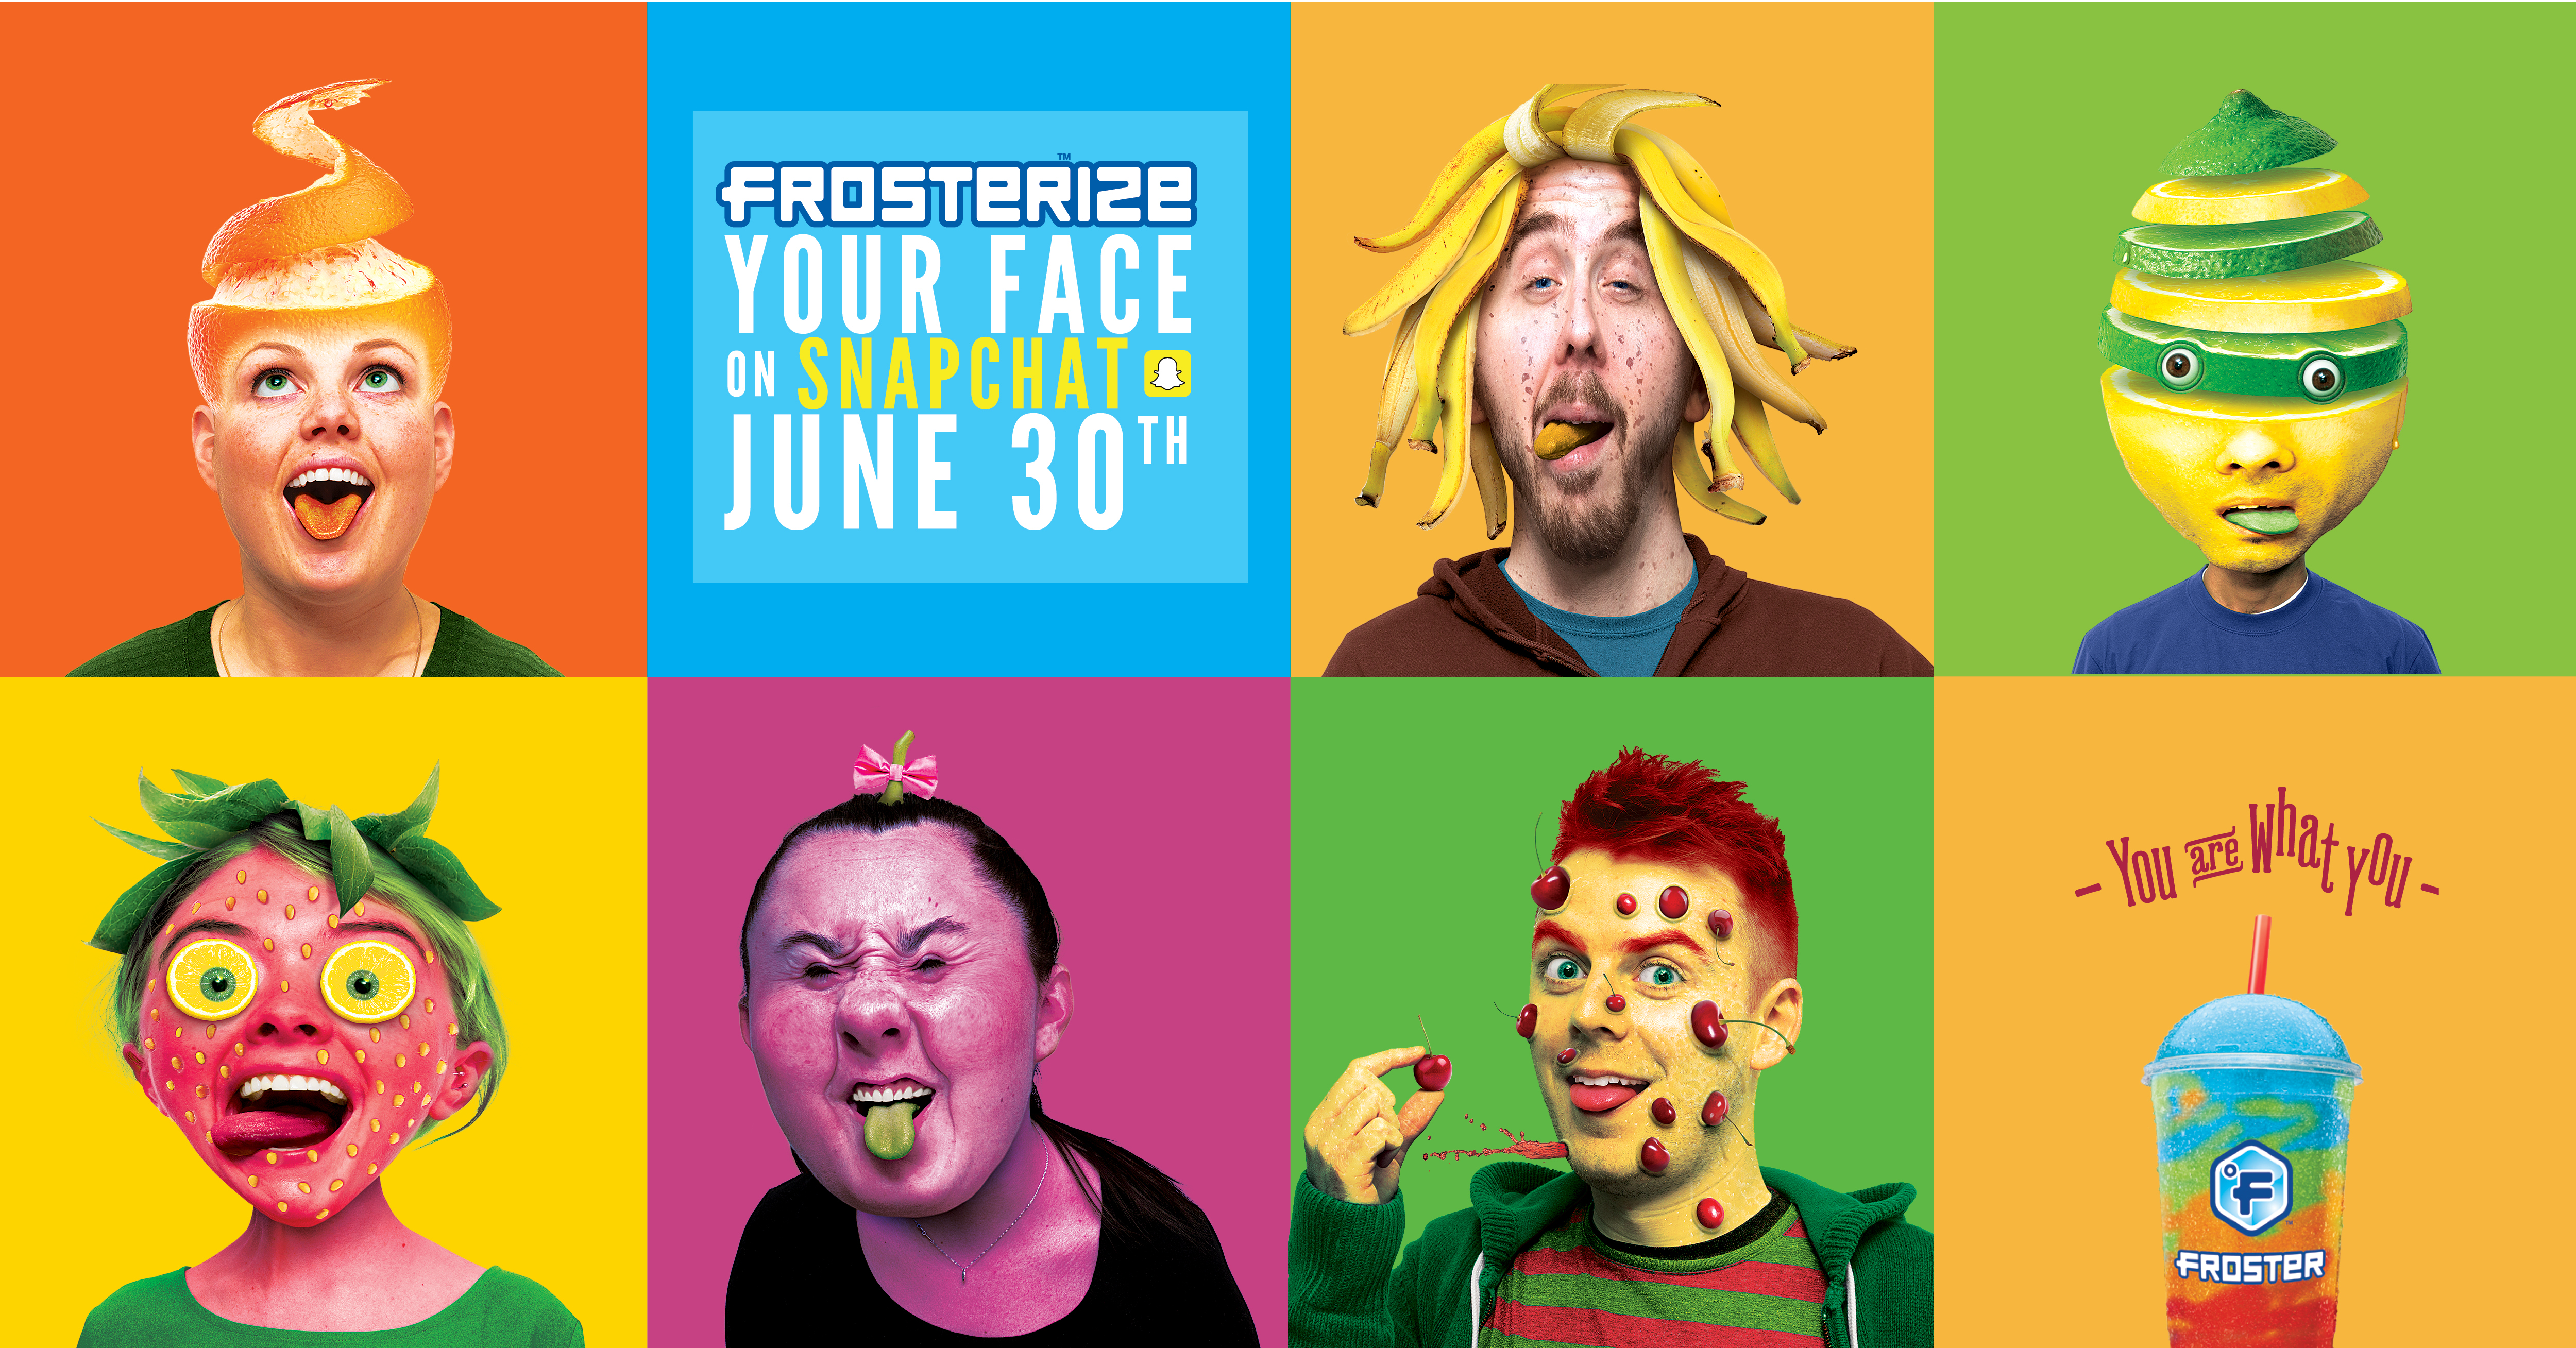 """This campaign targeted 17-year-olds to create awareness of Mac's Froster frosty drink with the shareable """"Frosterize your face on Snapchat"""" campaign. The agency characterized the flavours on posters and gave users the ability to transform their faces into flavours on Snapchat."""